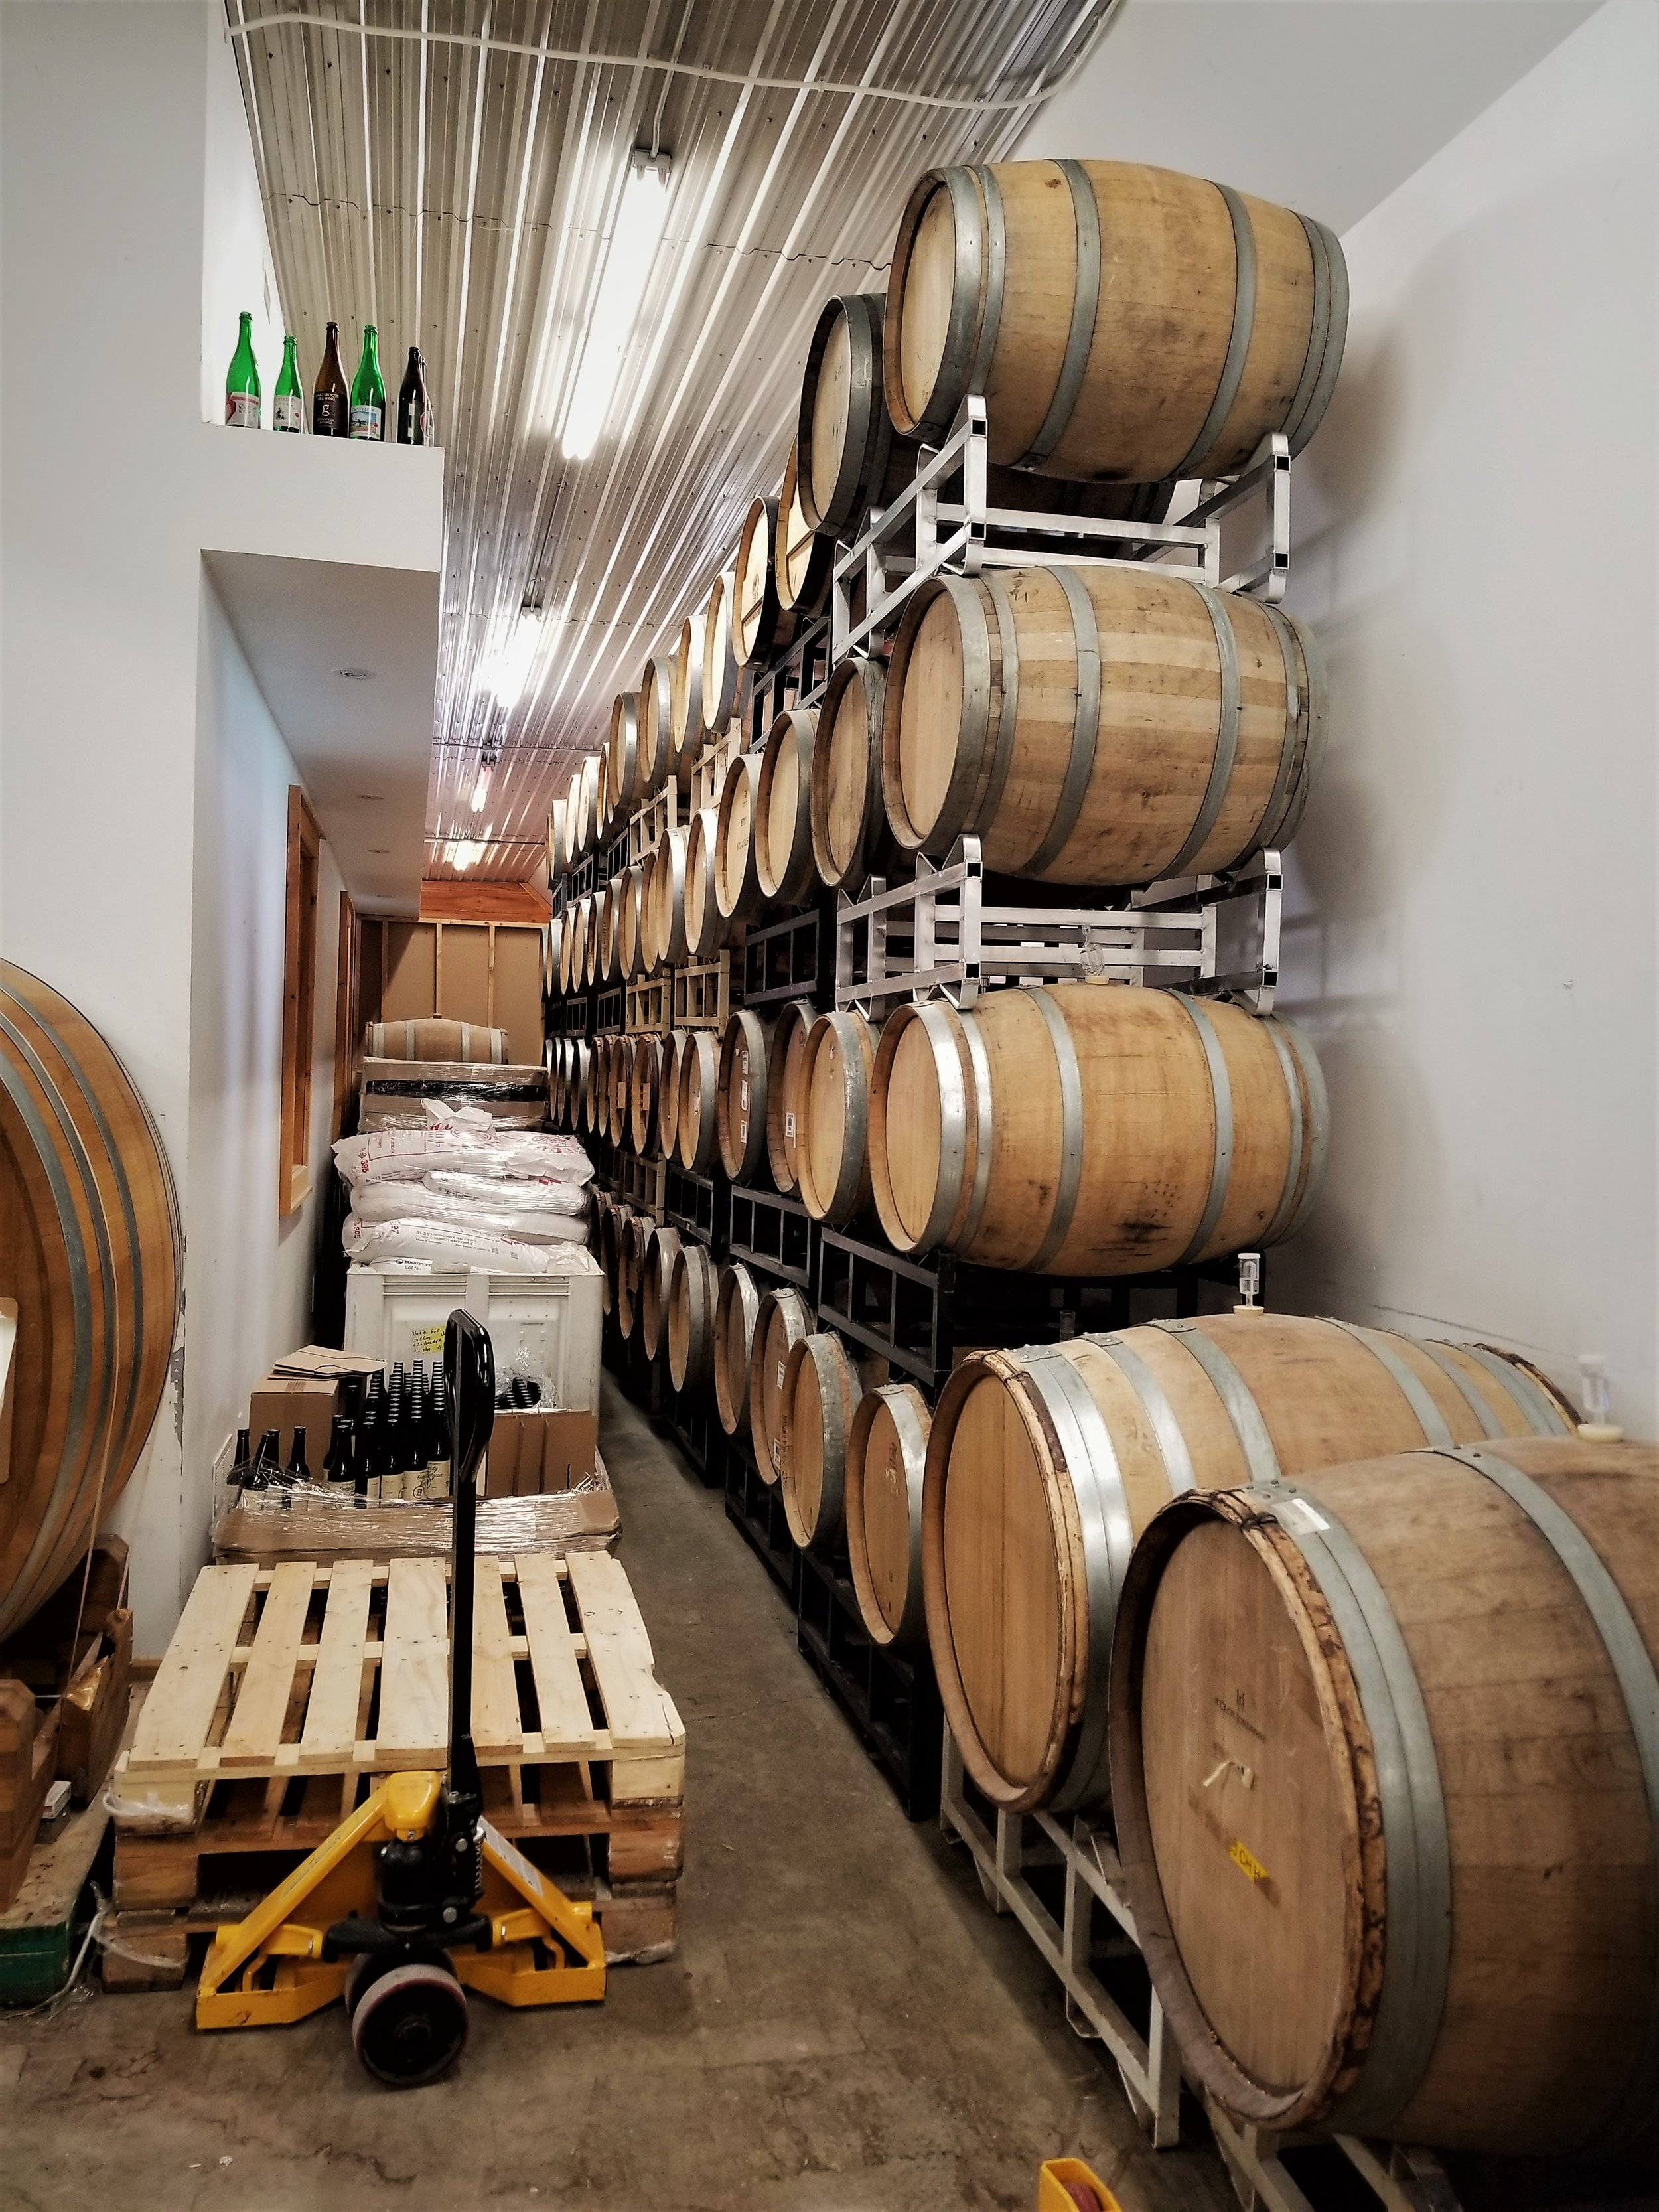 A shot of some of the many barrels that can be found at Block 3.